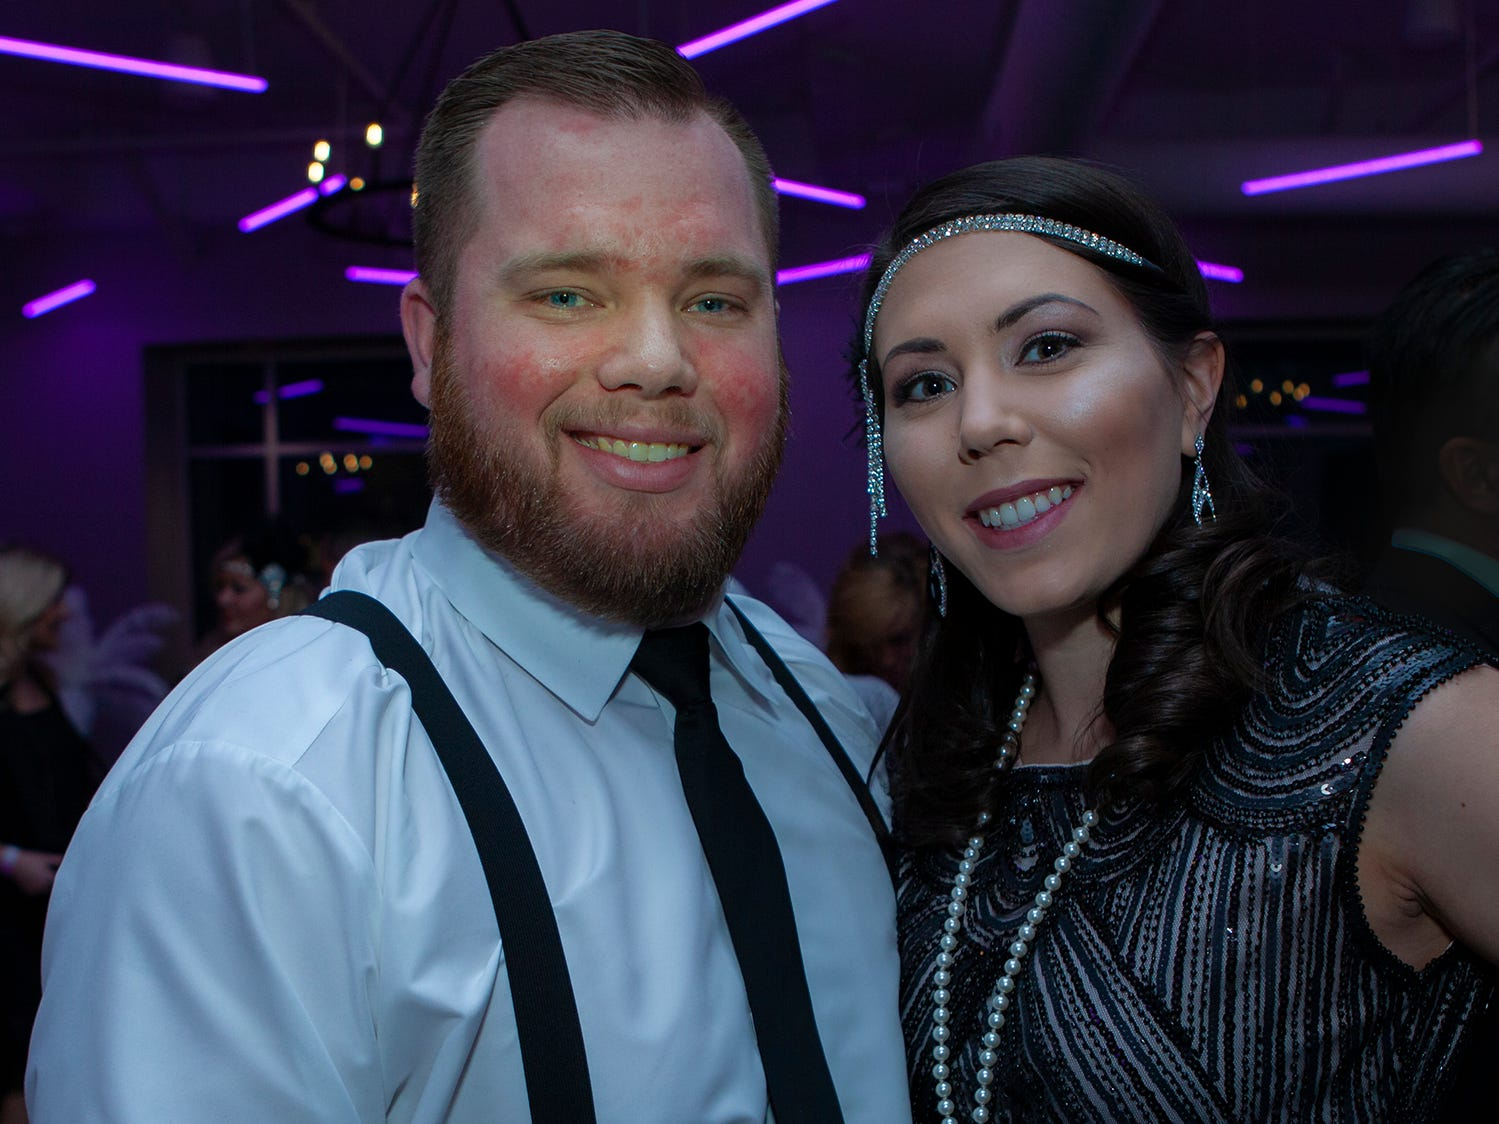 Matt and Jamie Herrington at The Gatsby Party, hosted by the Alzheimer's Association at The View at Fountains Saturday, March 16, 2019.